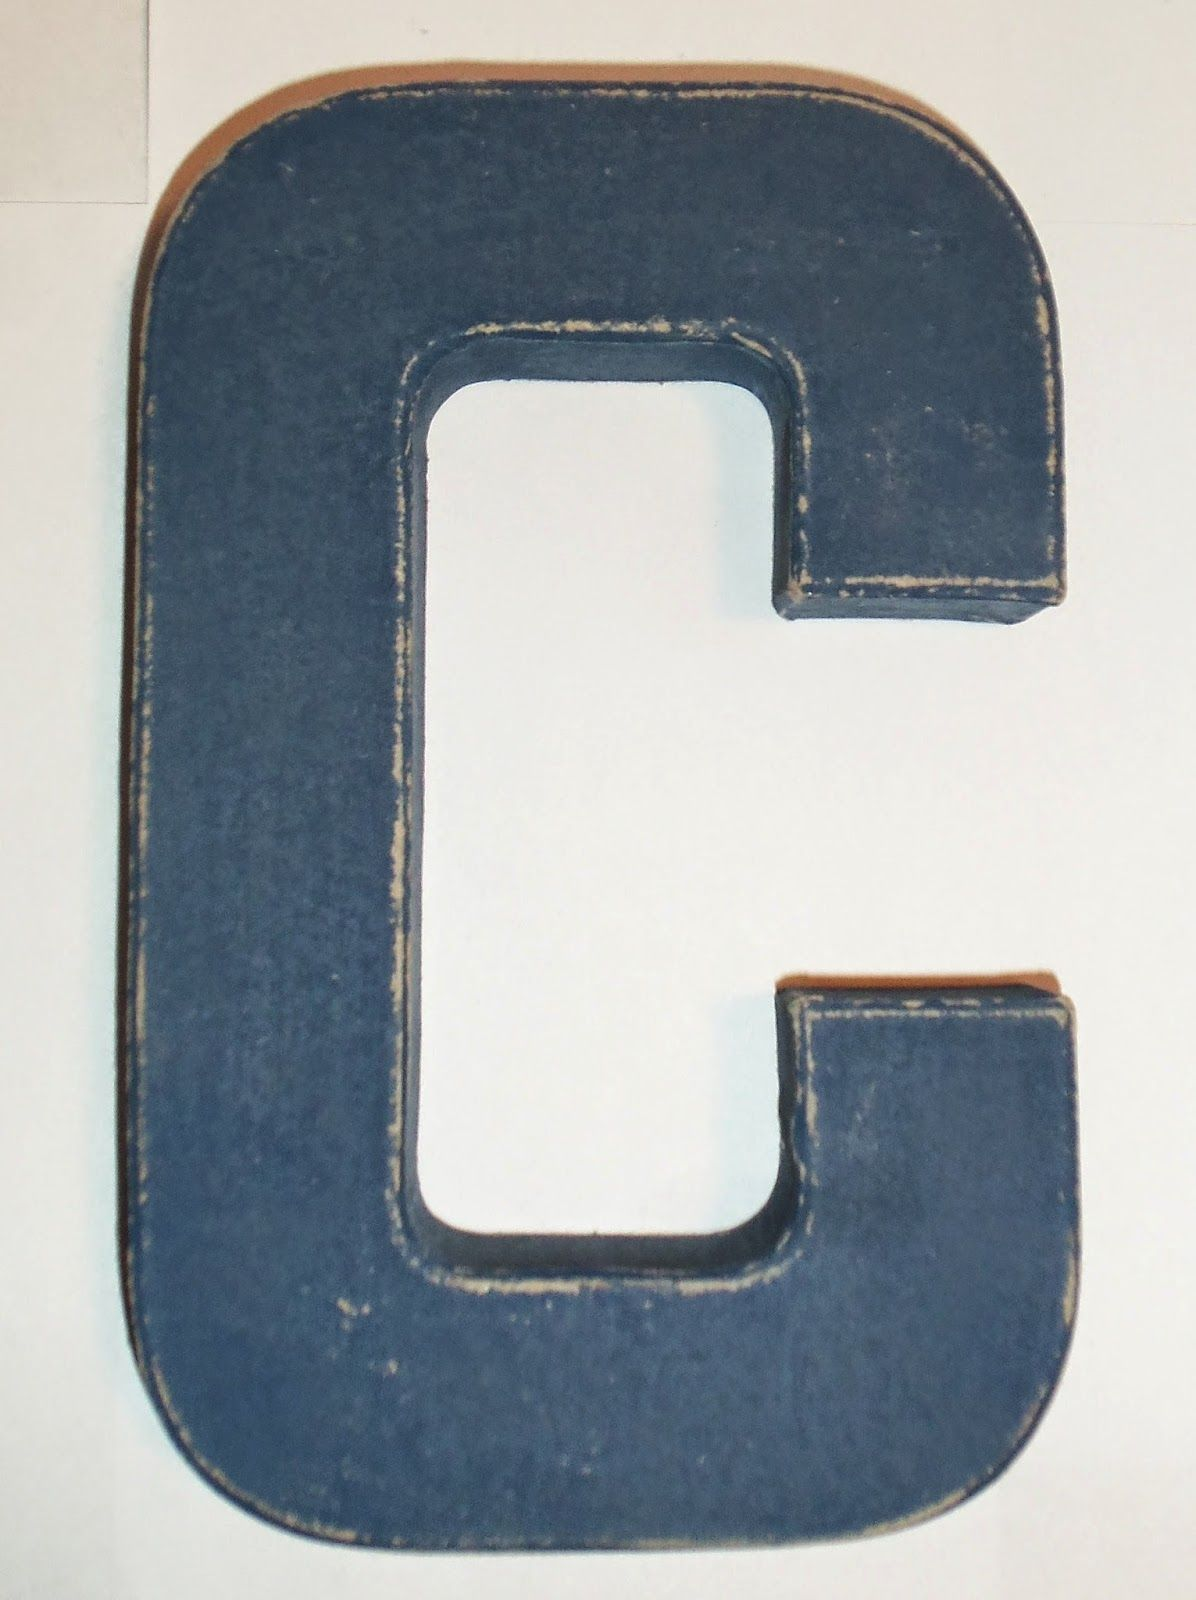 Distressed Paper Mache Letter Paper Mache Letters Wooden Letter Crafts Cardboard Painting